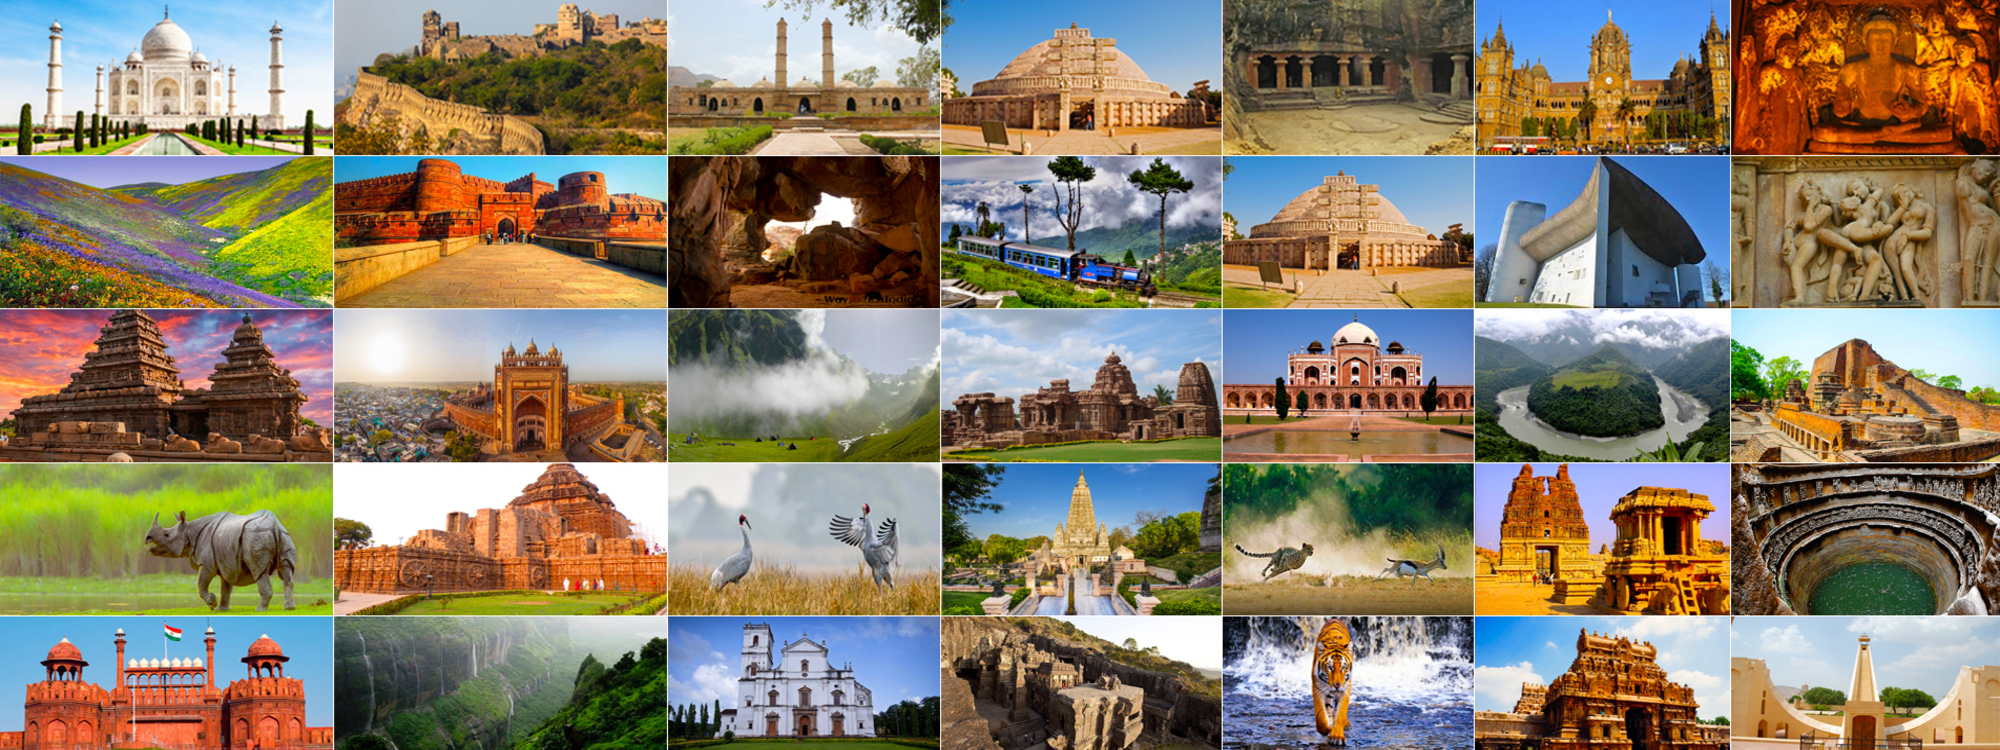 UNESCO world heritage sites of india